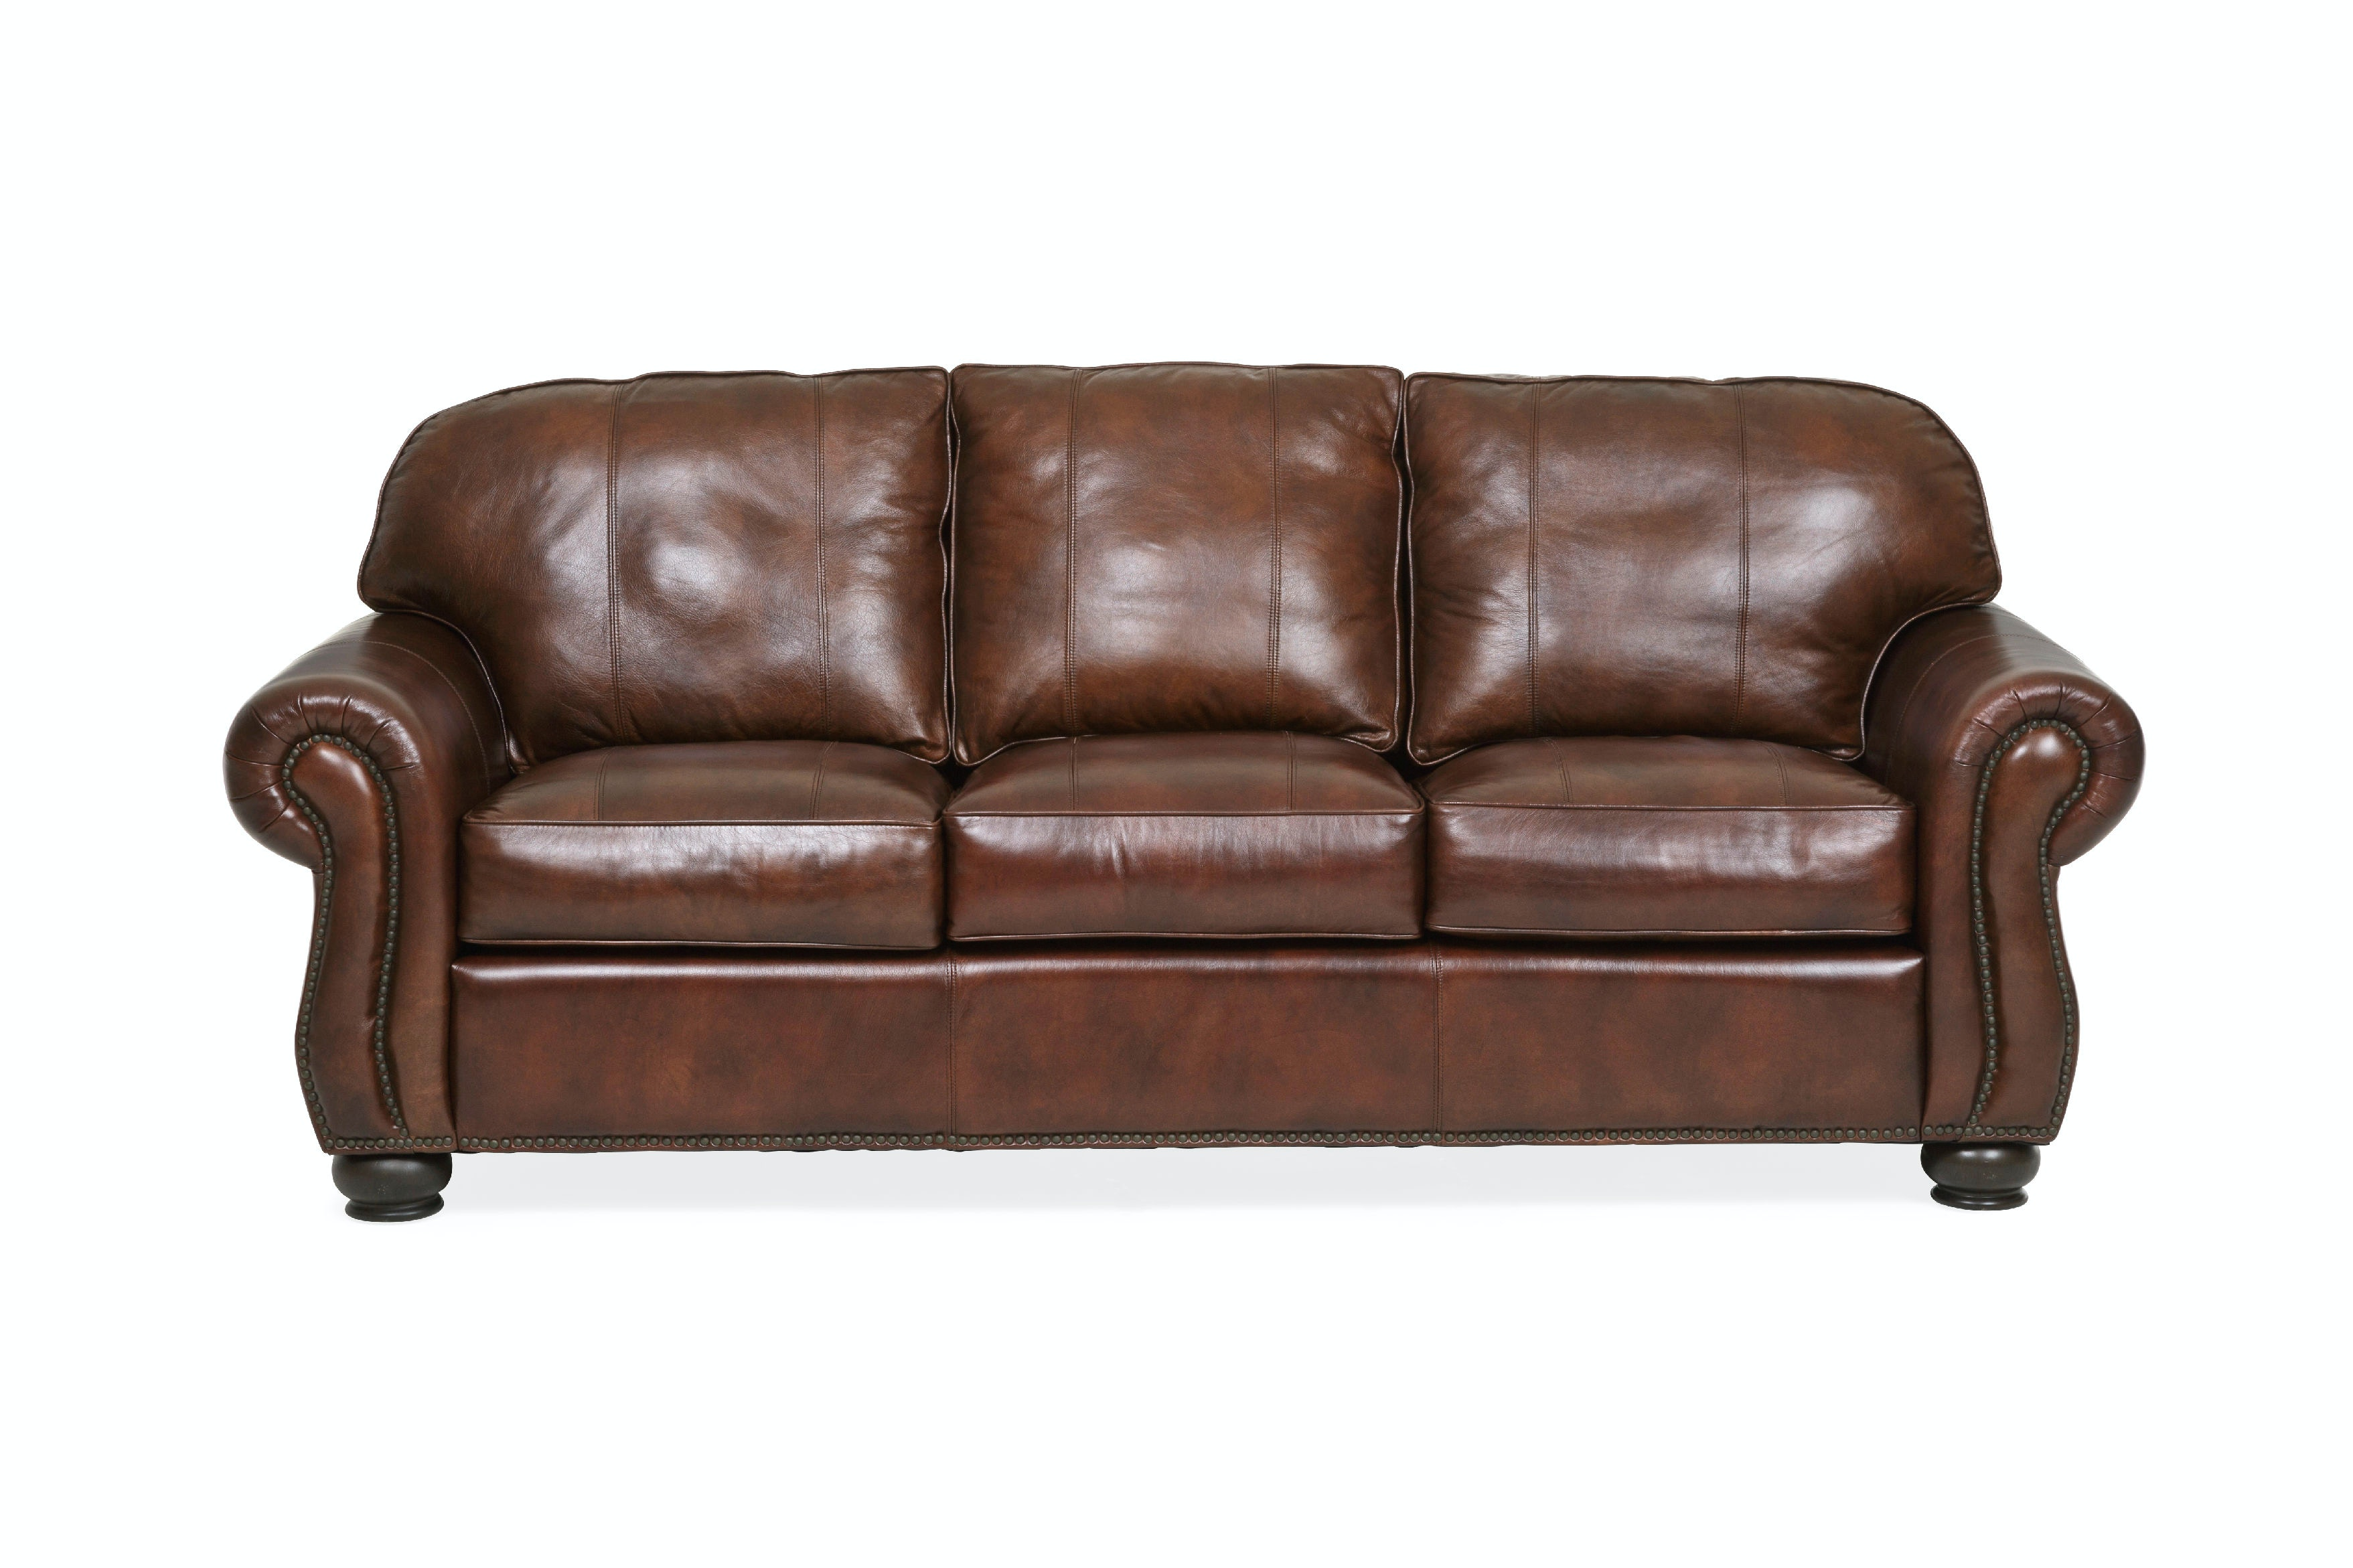 Fresh Benson Leather Sofa ST Style - Elegant nubuck leather sofa Photos